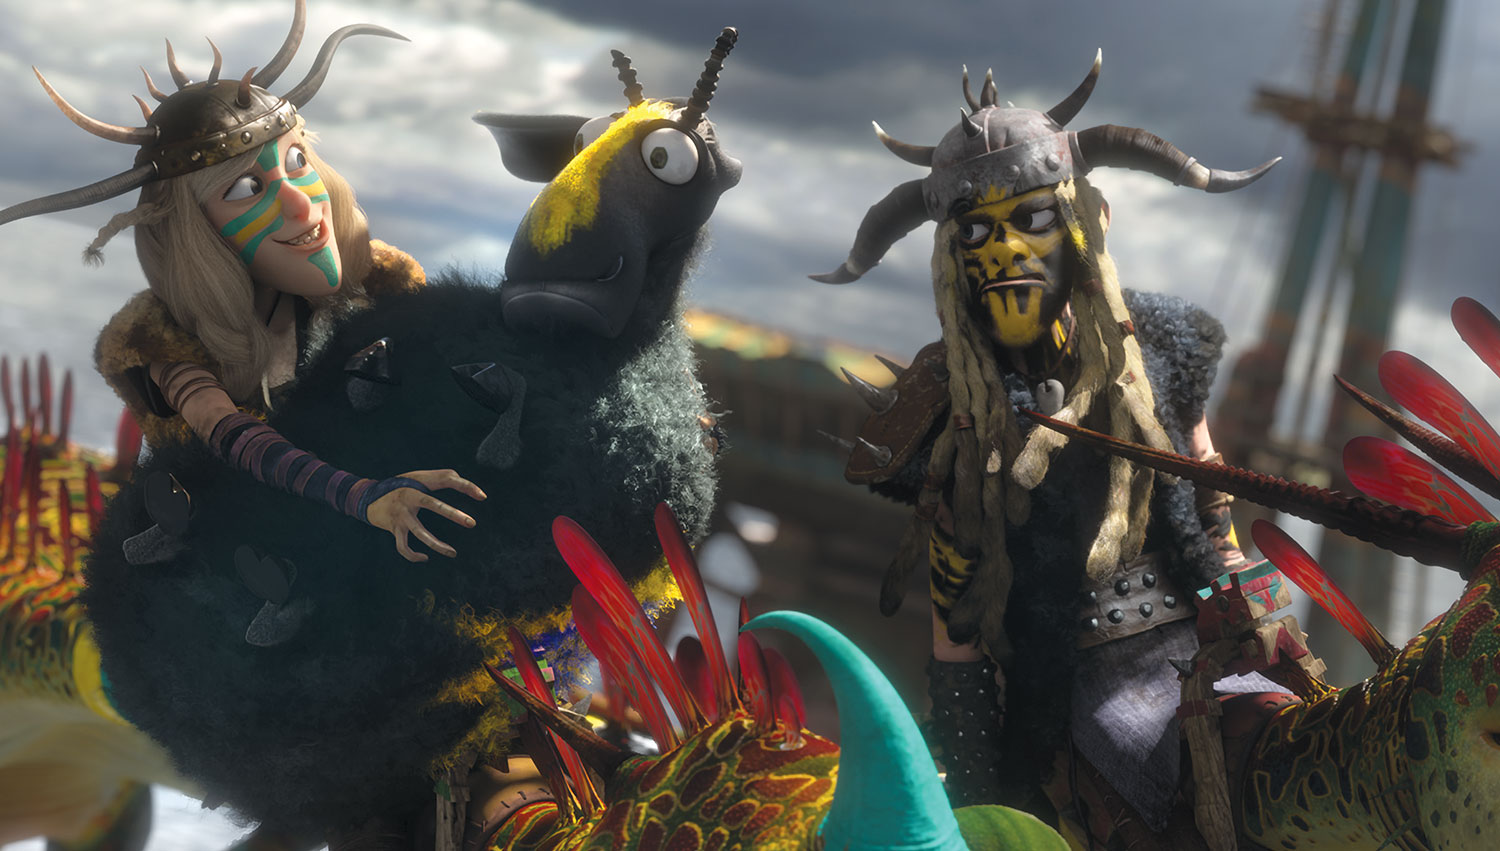 How to Train Your Dragon images Ruffnut and Tuffnut ...